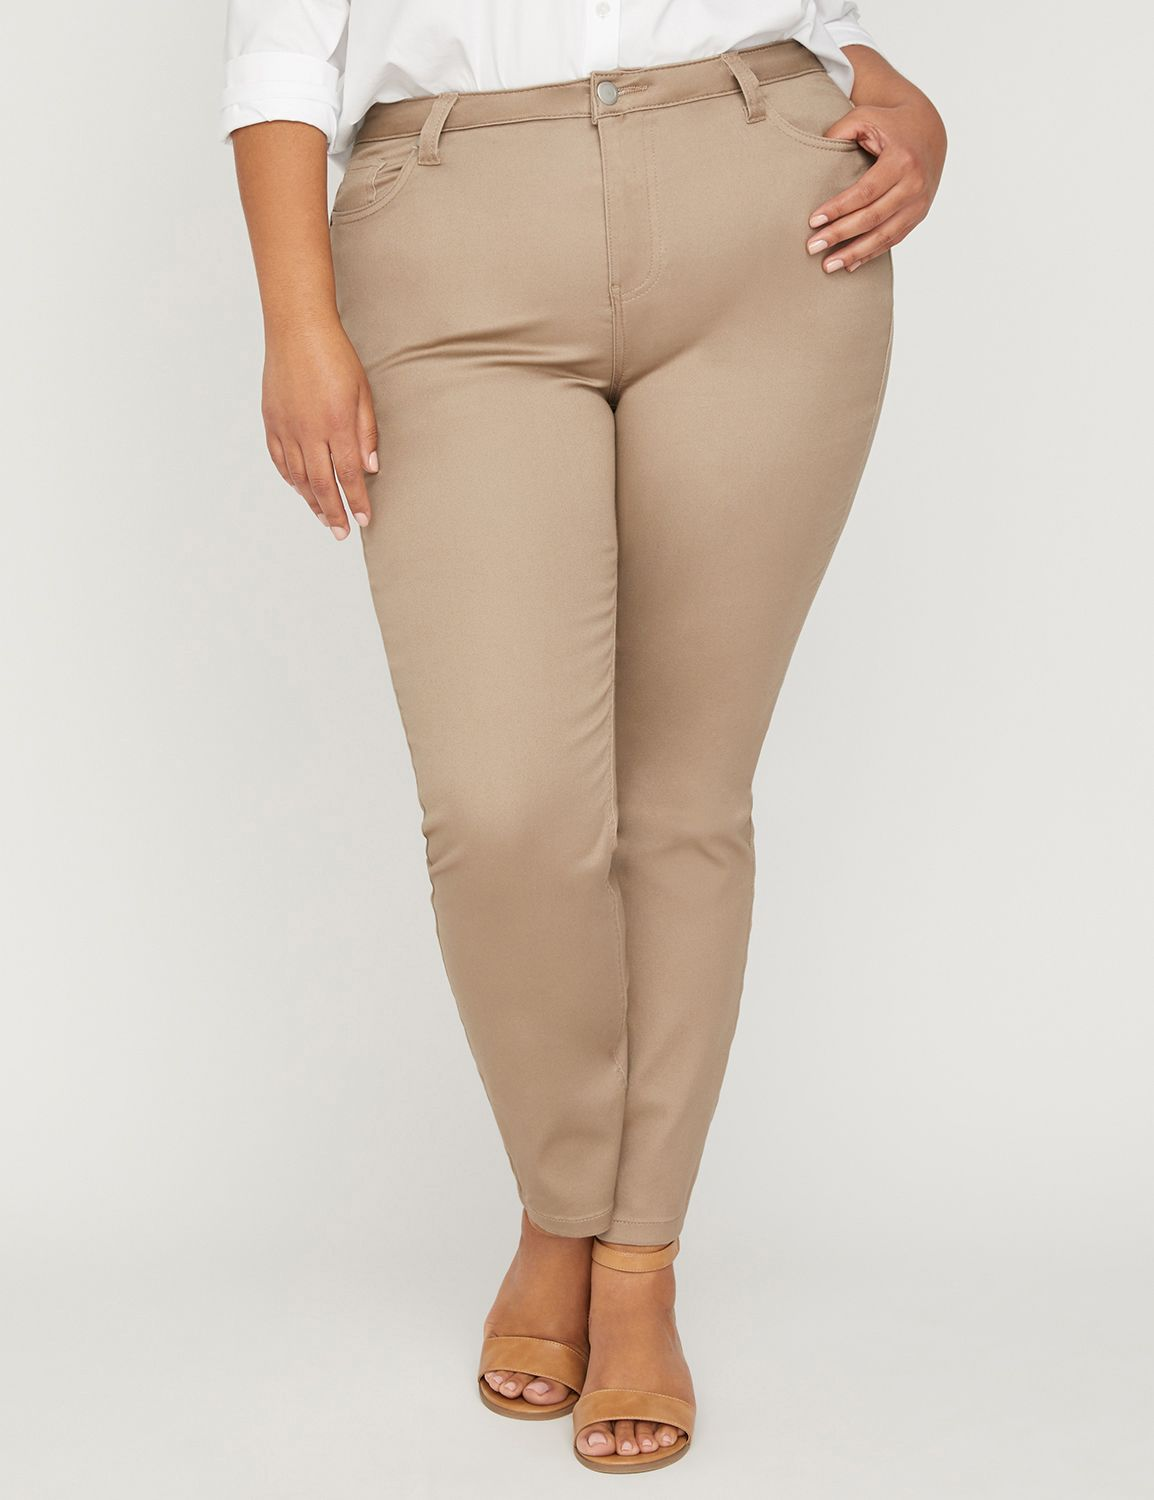 Modern Sateen Stretch Pant Done MP-300083785